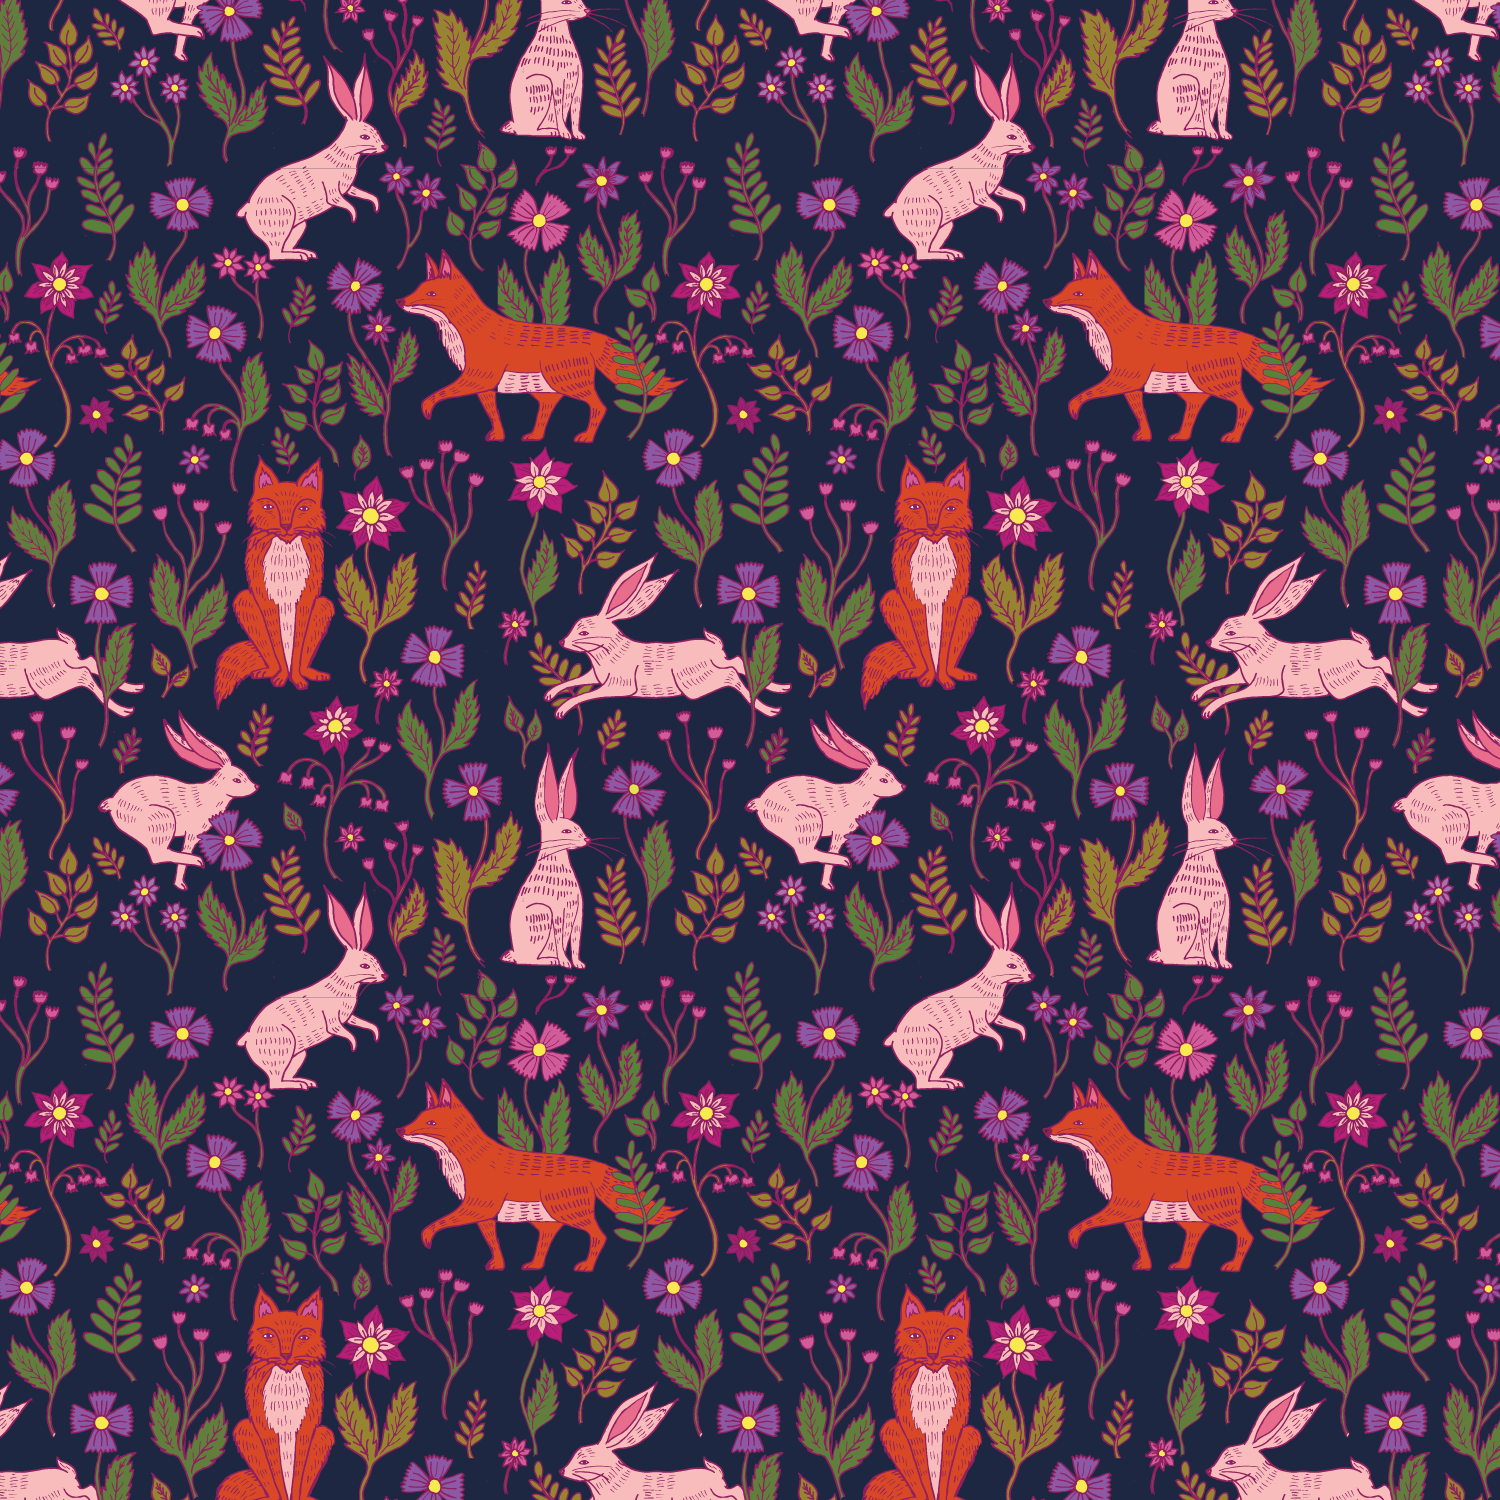 fox-and-hare-pattern-2.png